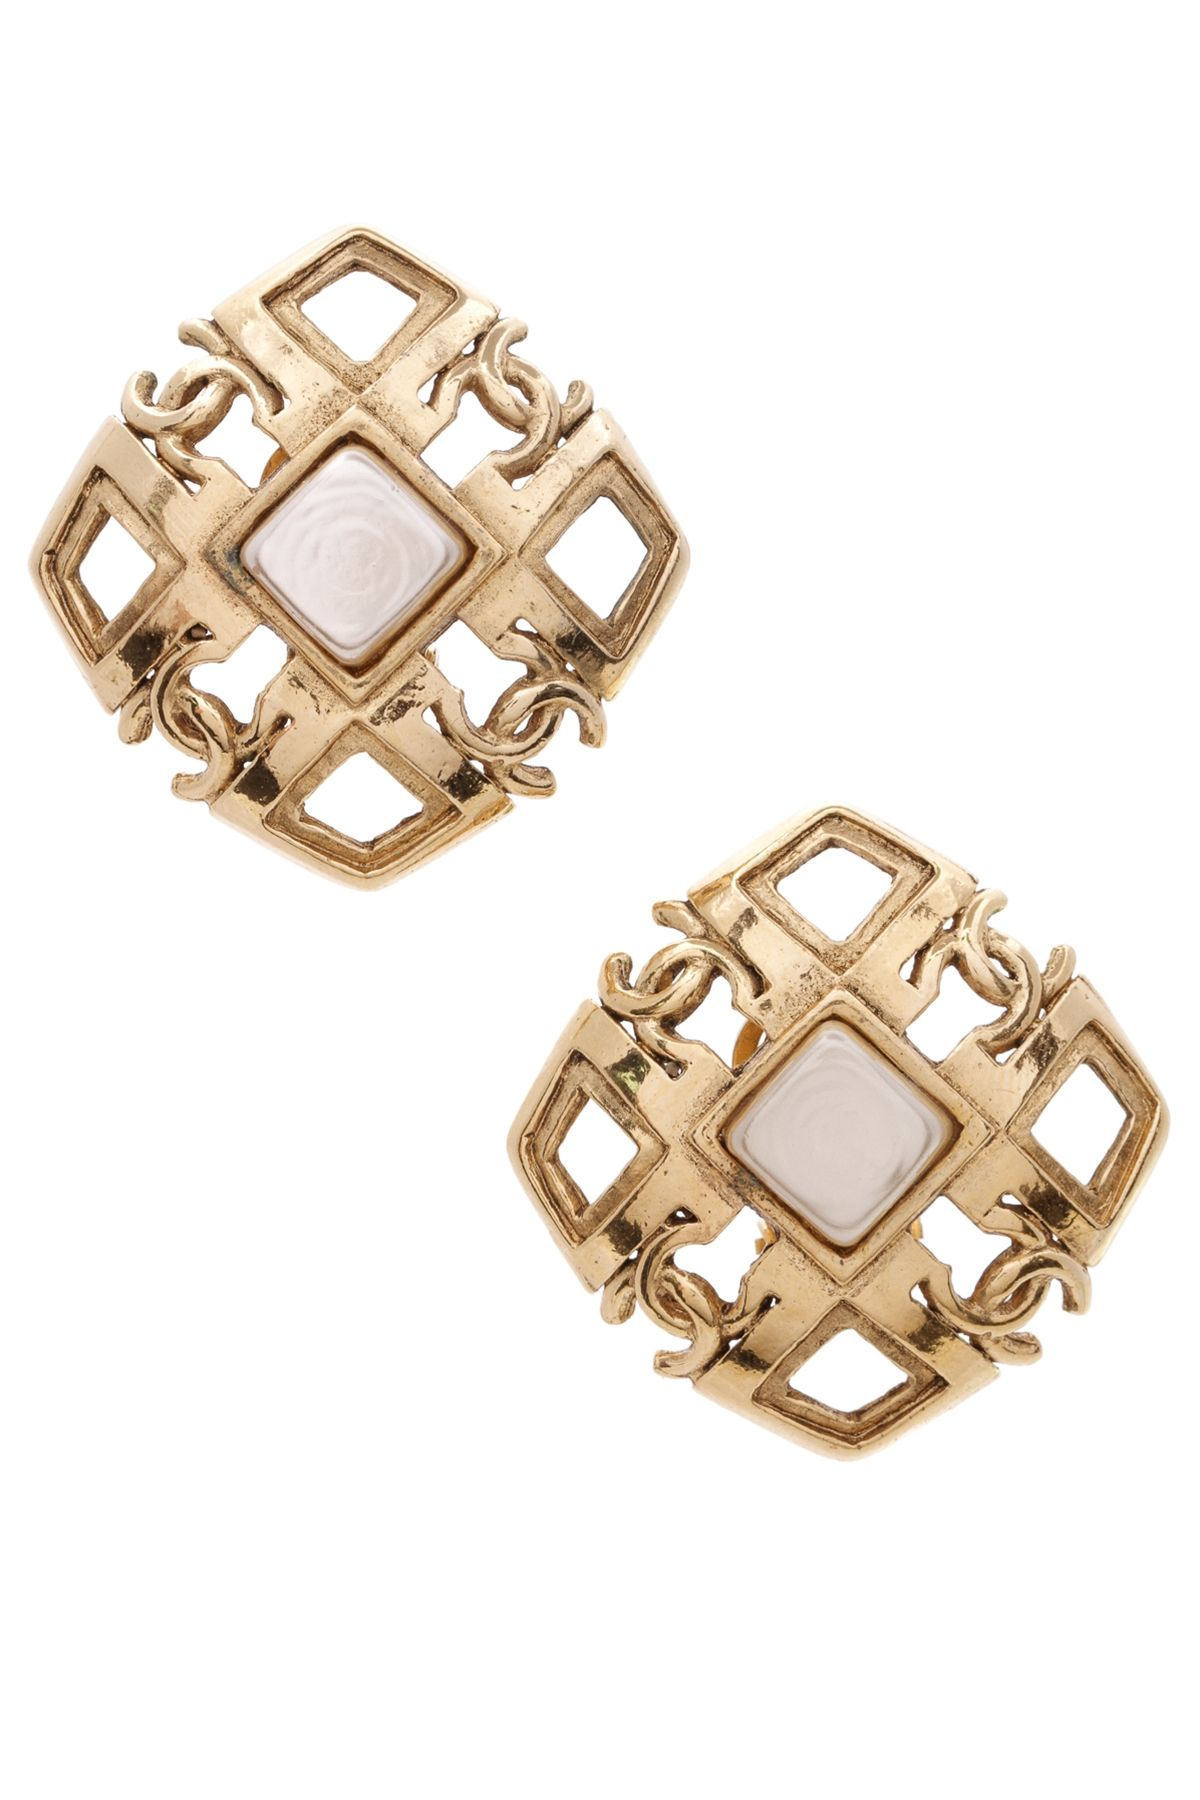 This Pair Of Authentic Chanel Signature Cc Clip On Earrings Pay